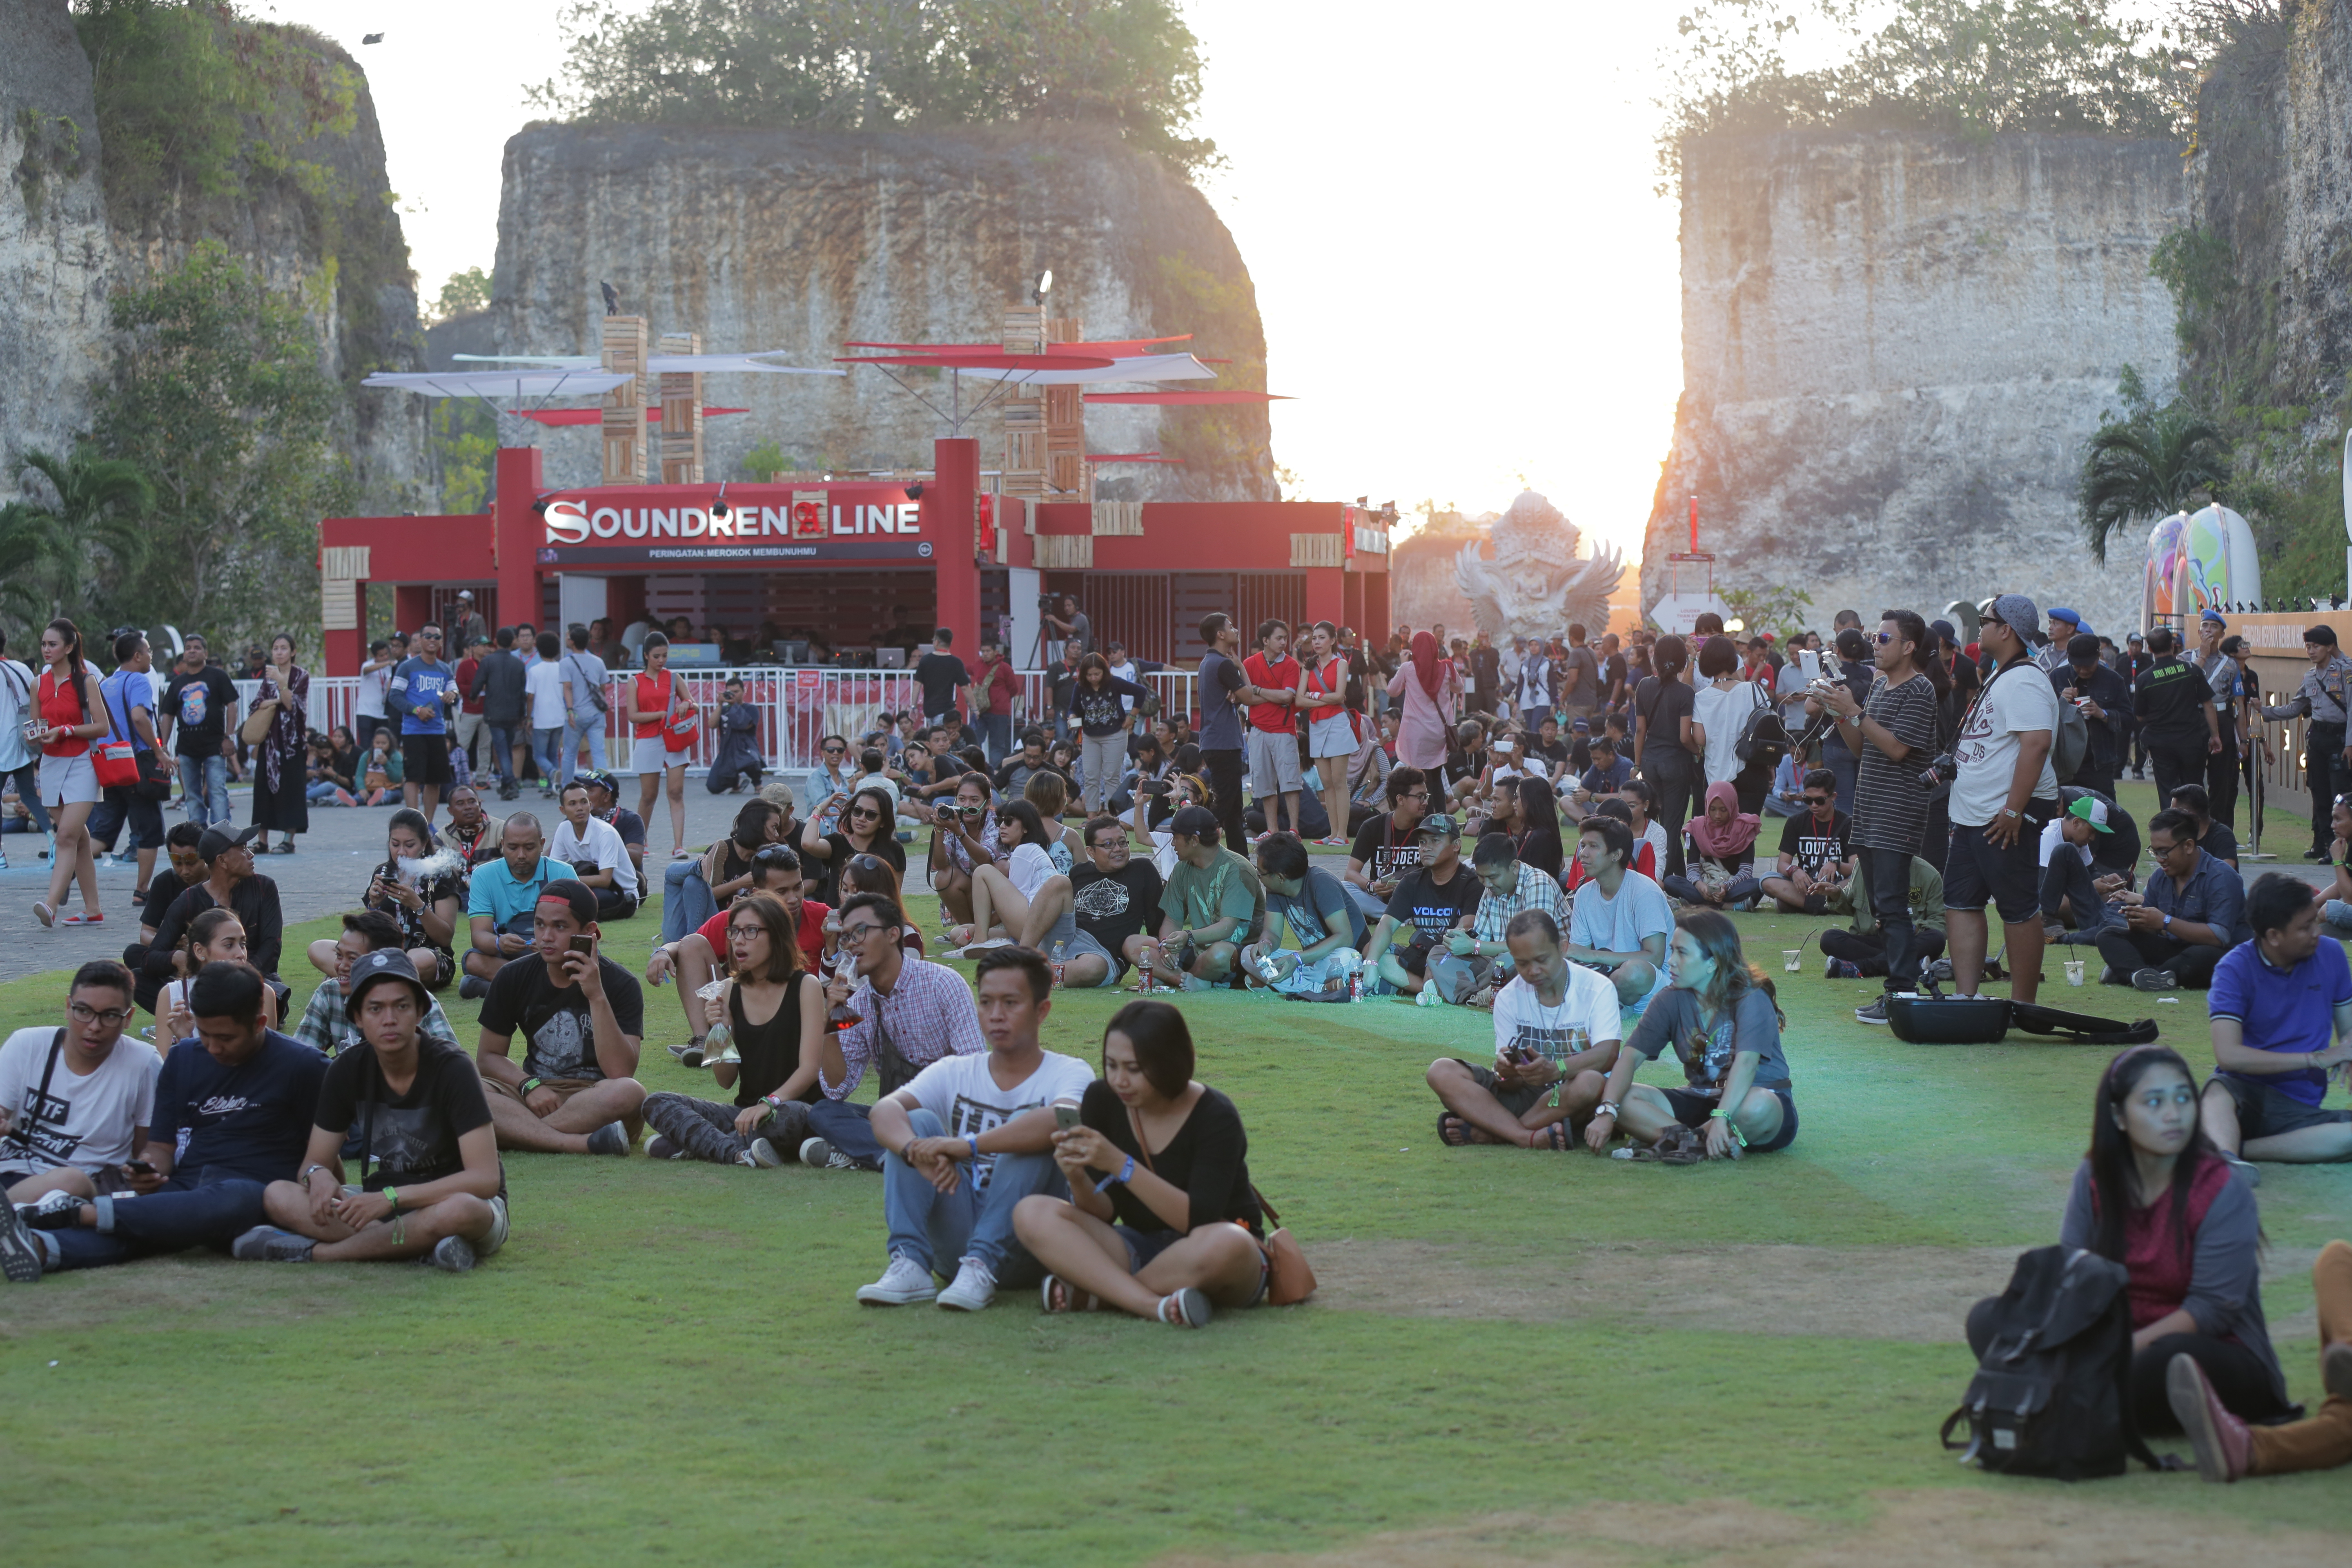 Soundrenaline 2016: Louder Than Ever – Day 1